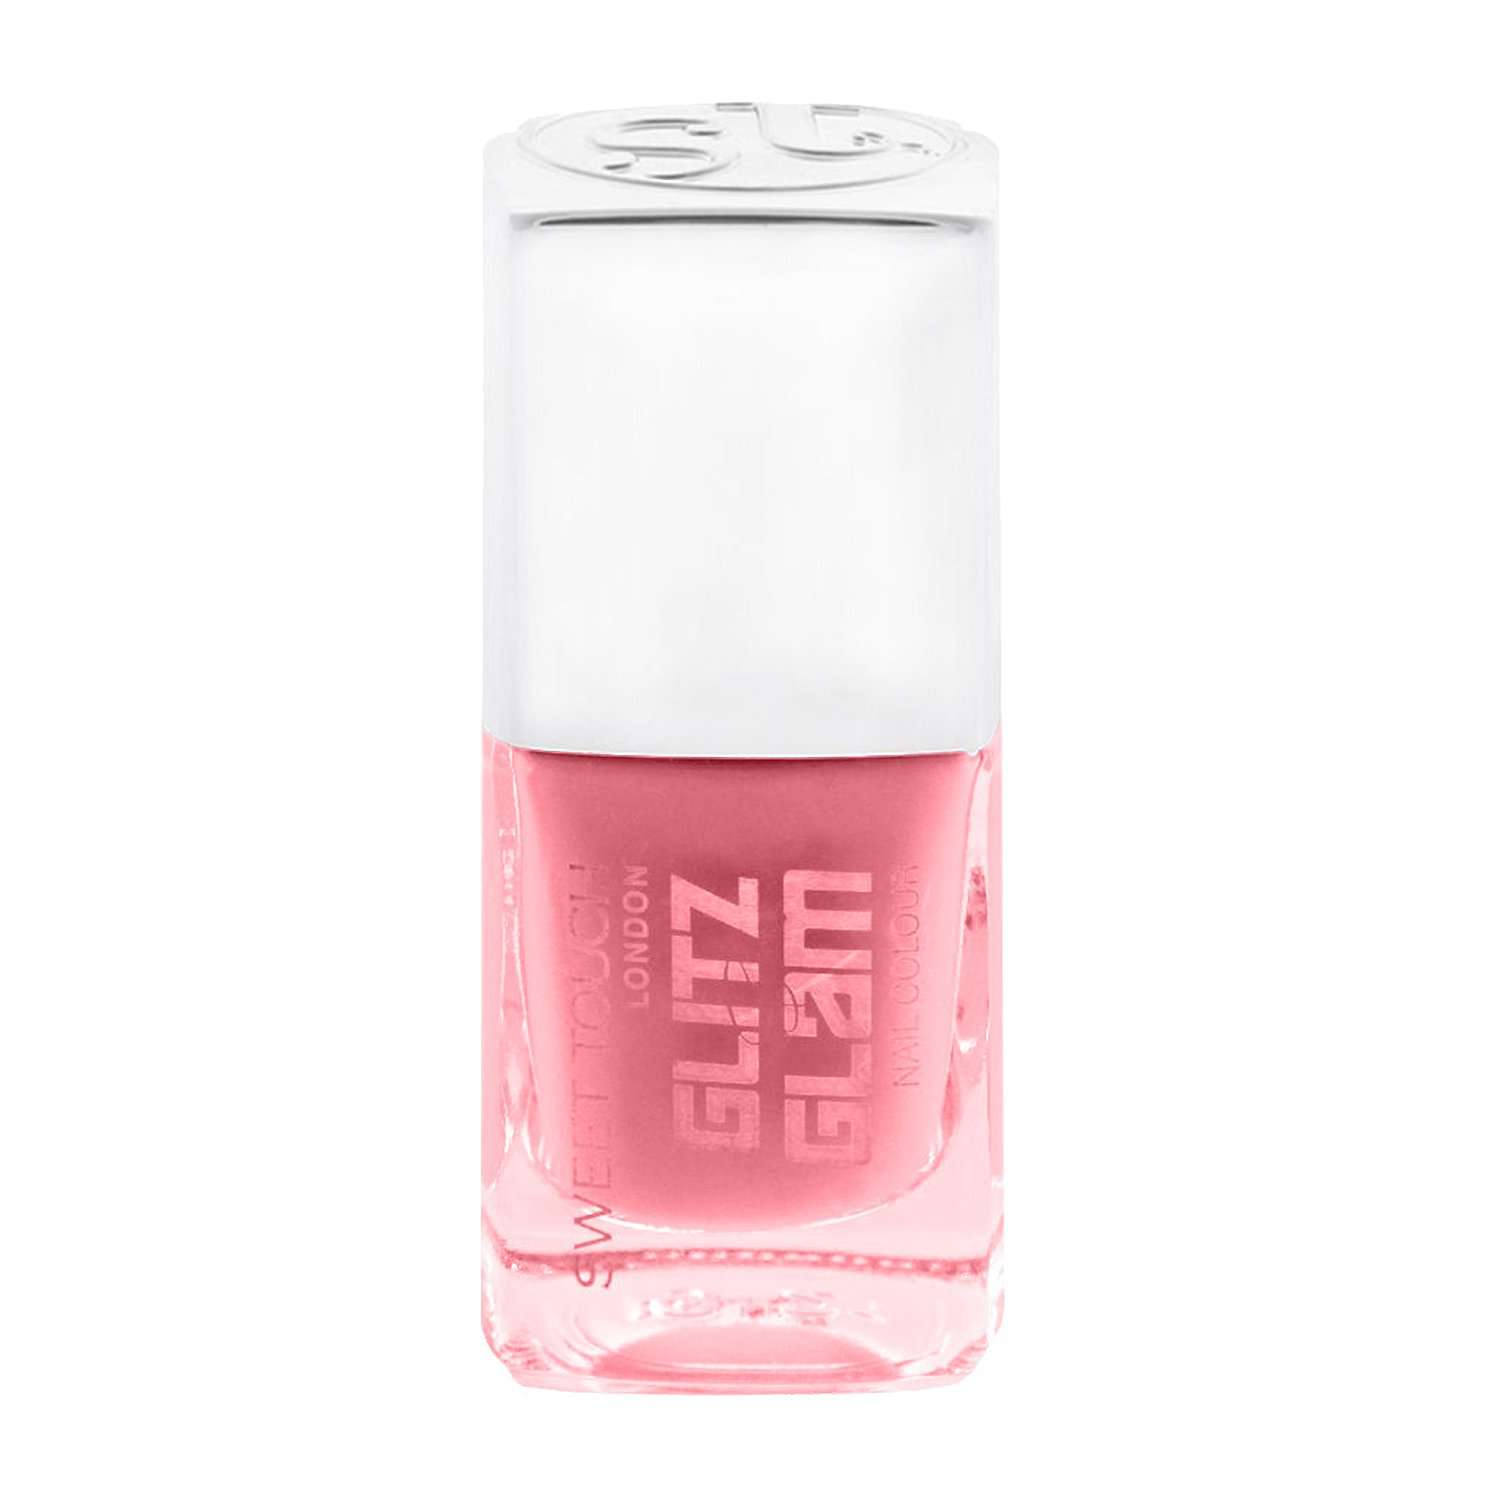 Glitz & Glam Nail Colour - ST 254 Candy Floss